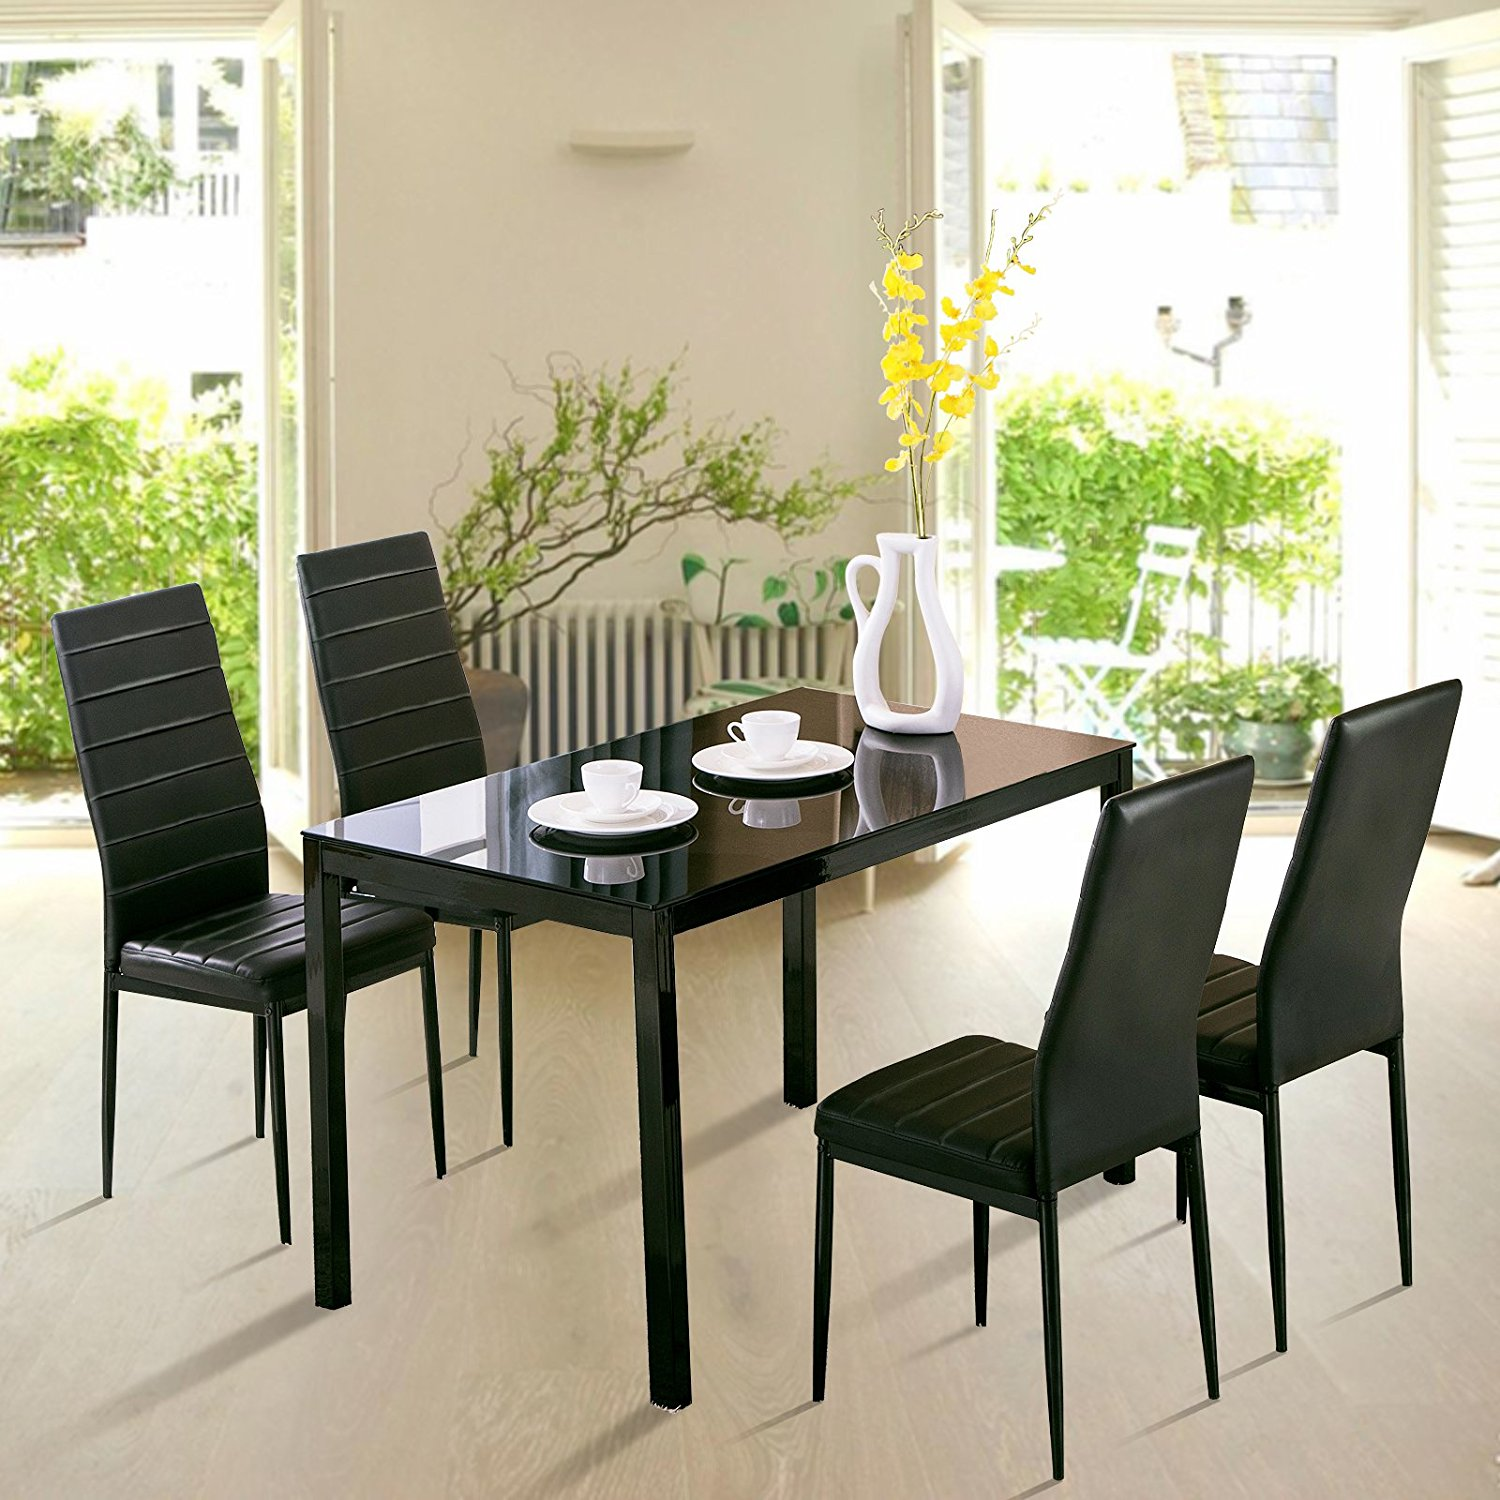 Uenjoy 5 Piece Dining Table Set 4 Chairs Glass Metal Kitchen Room Breakfast & 5 Piece Dining Sets